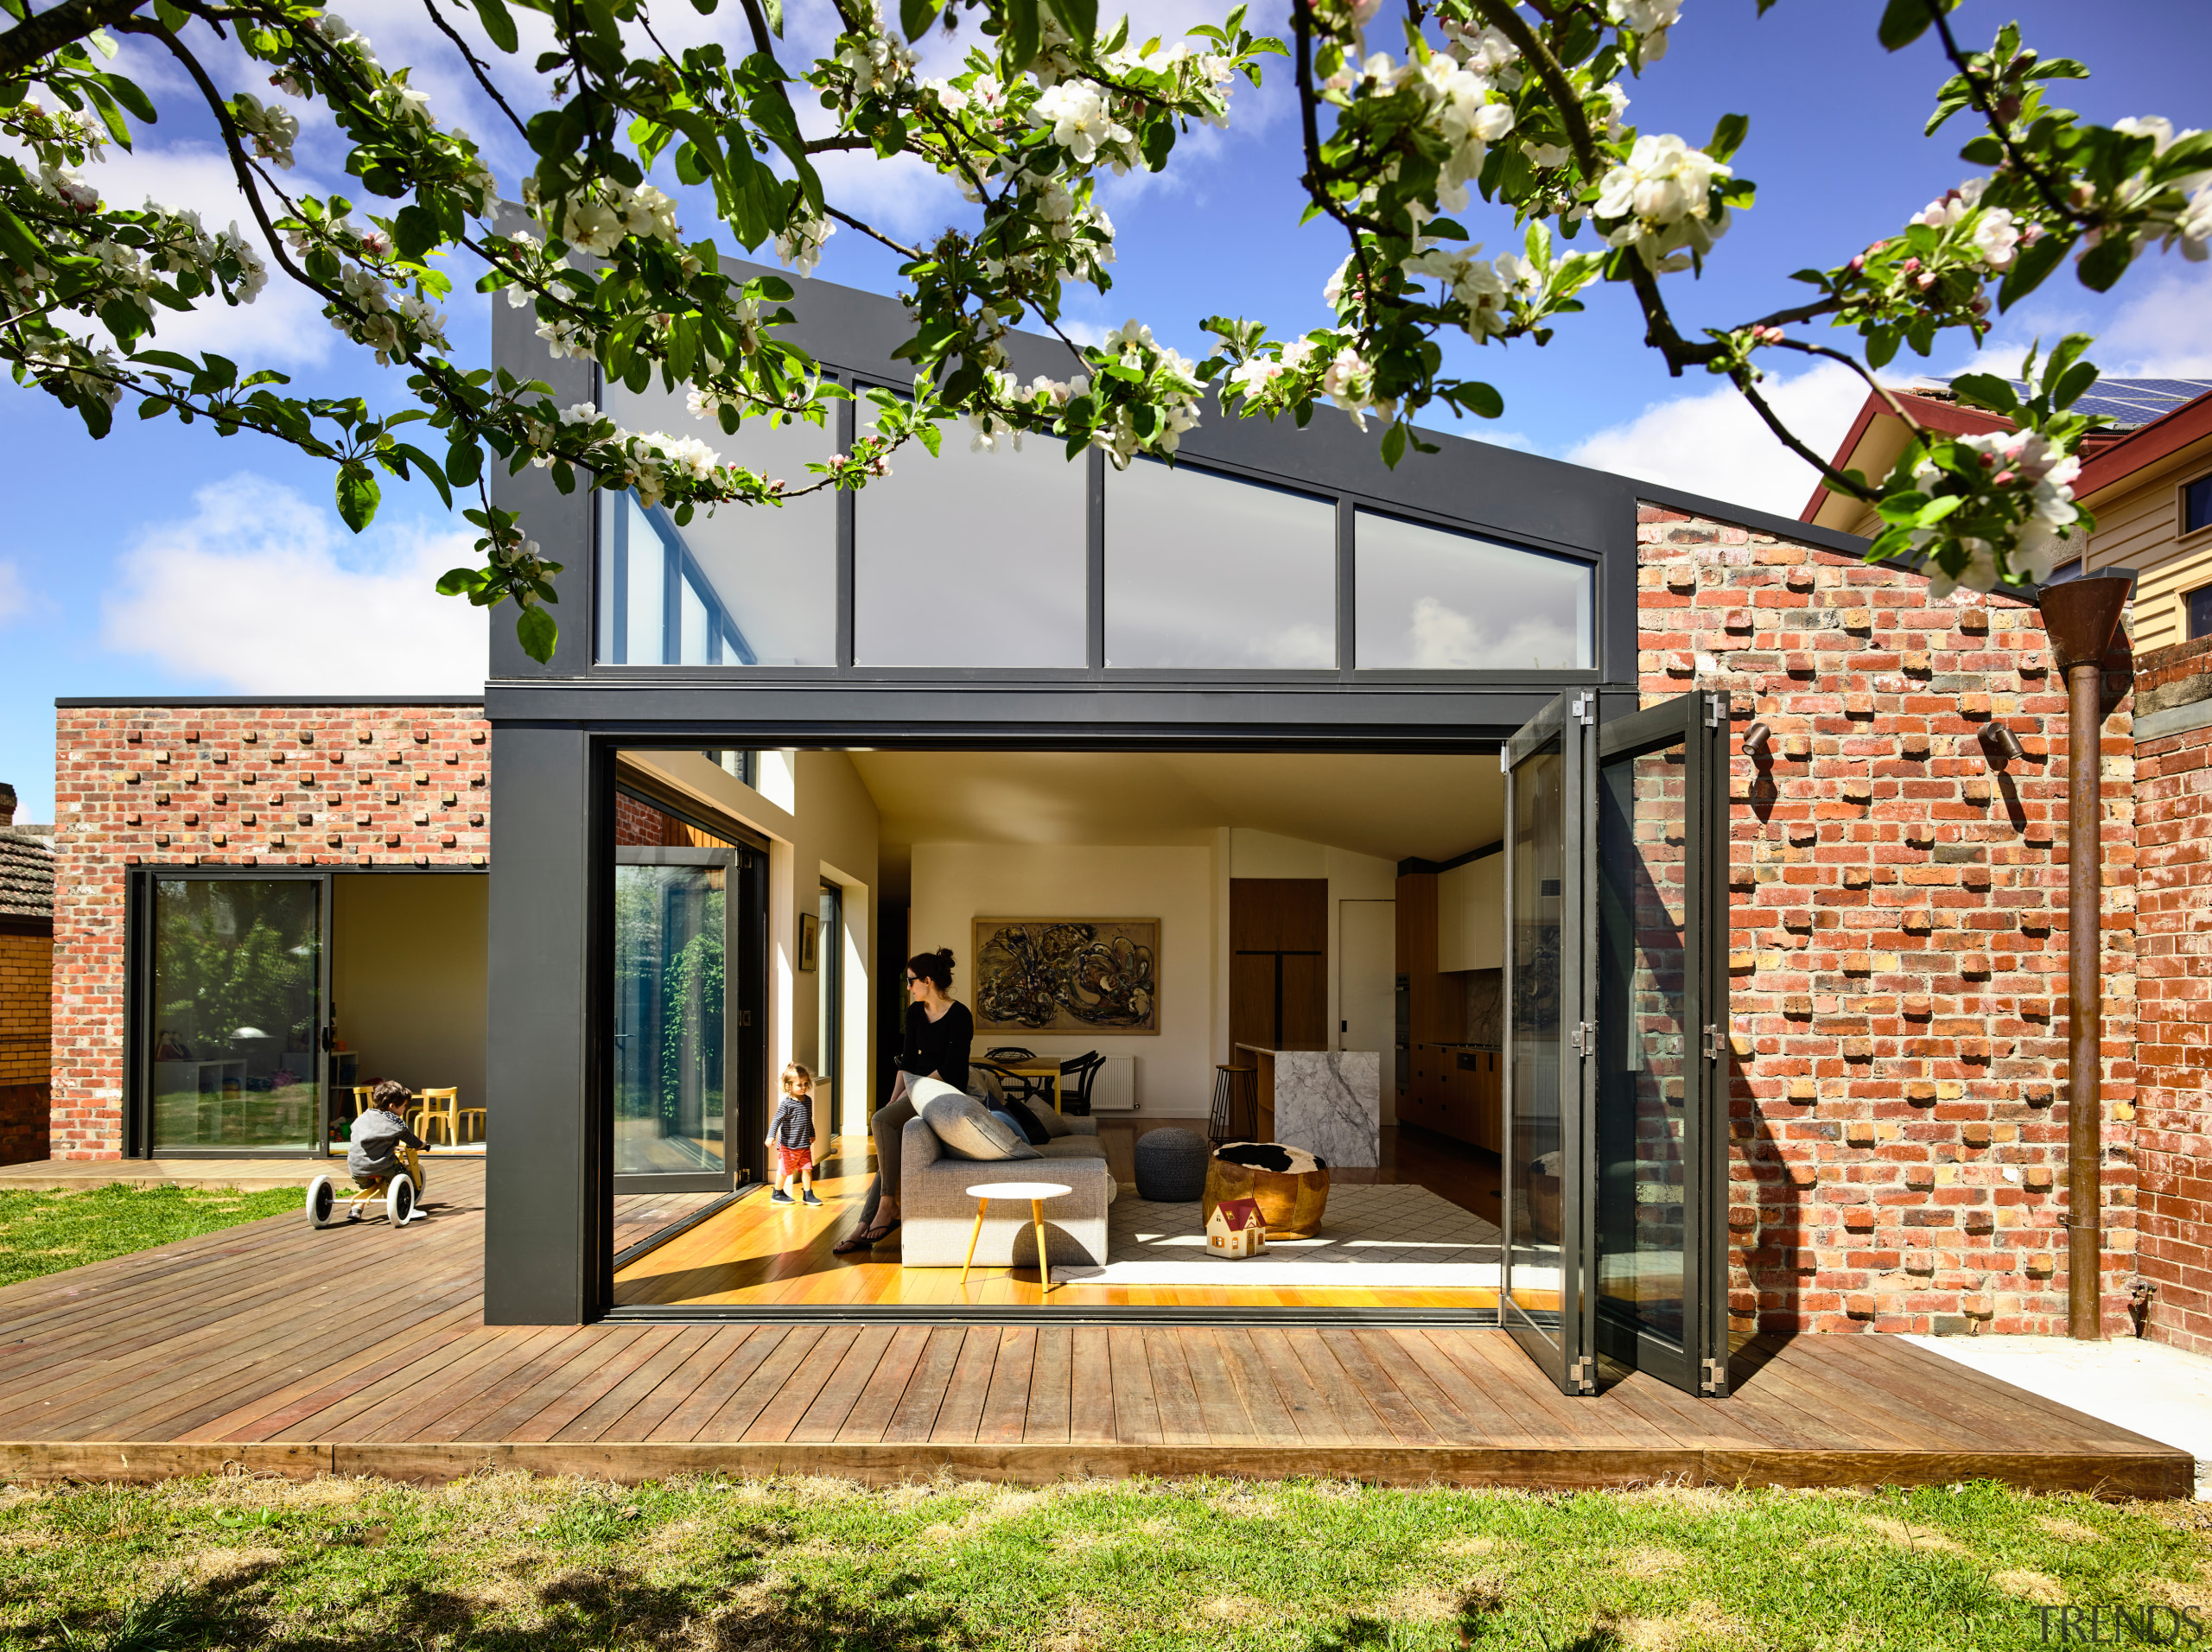 How do you keep your interior cool over architecture, estate, facade, home, house, property, residential, brick, bifold windows, Porter Architecture